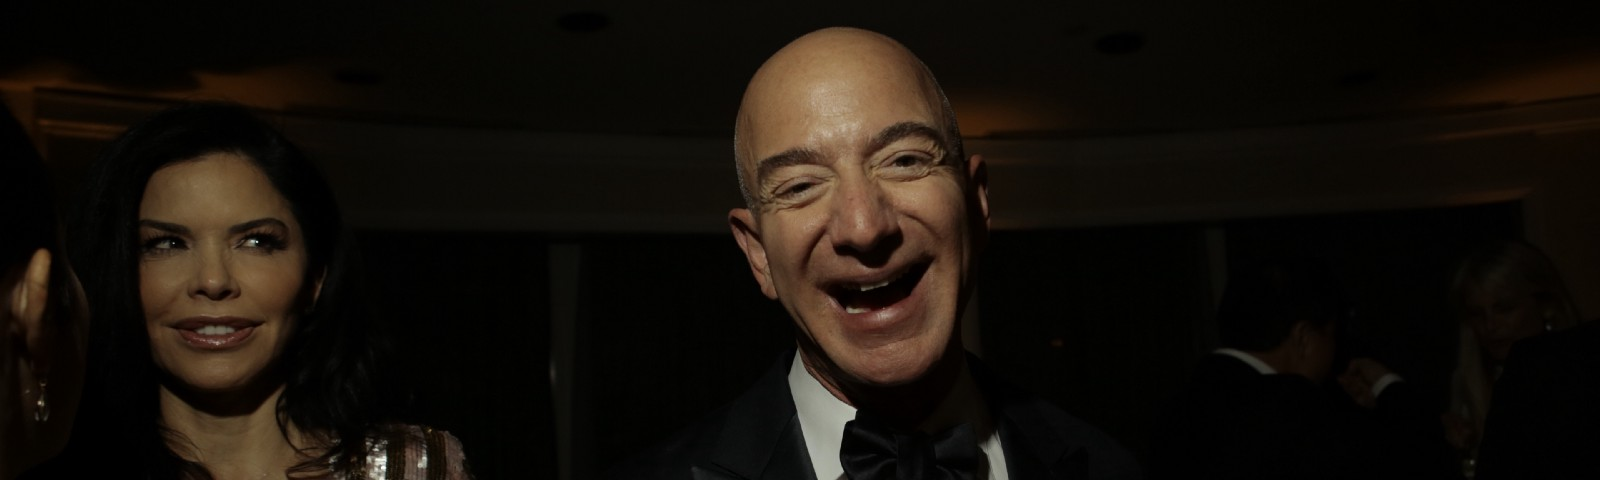 e8f6b73d66ef54 How Jeff Bezos Went to Hollywood and Lost ControlHow Jeff Bezos Went to  Hollywood and Lost Control. The Amazon billionaire ...